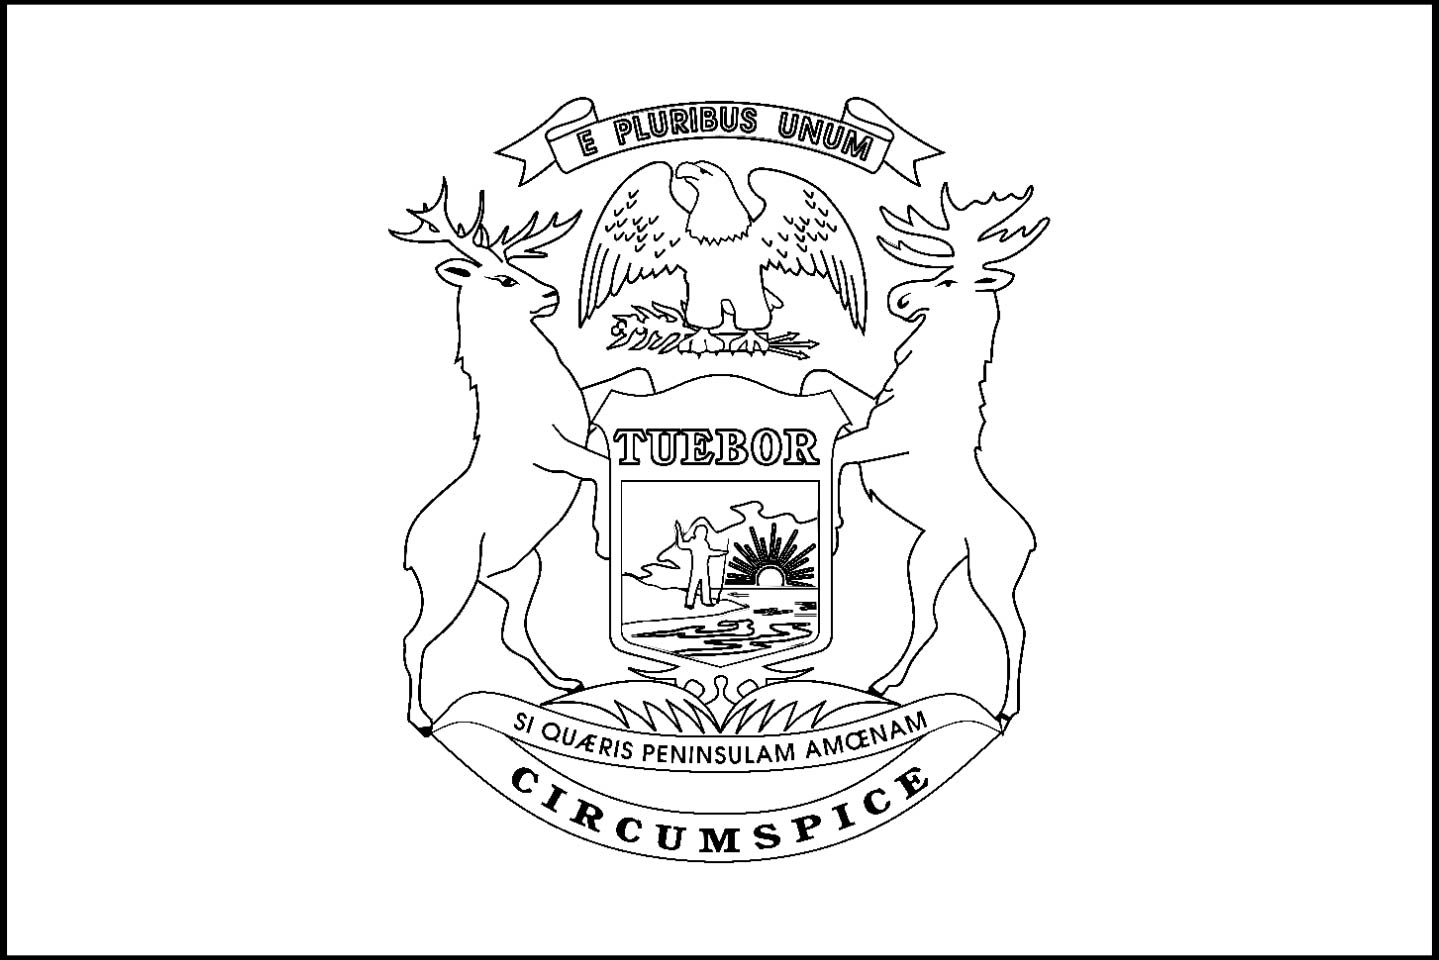 New York State Coloring Page At Getdrawings Com Free For Personal